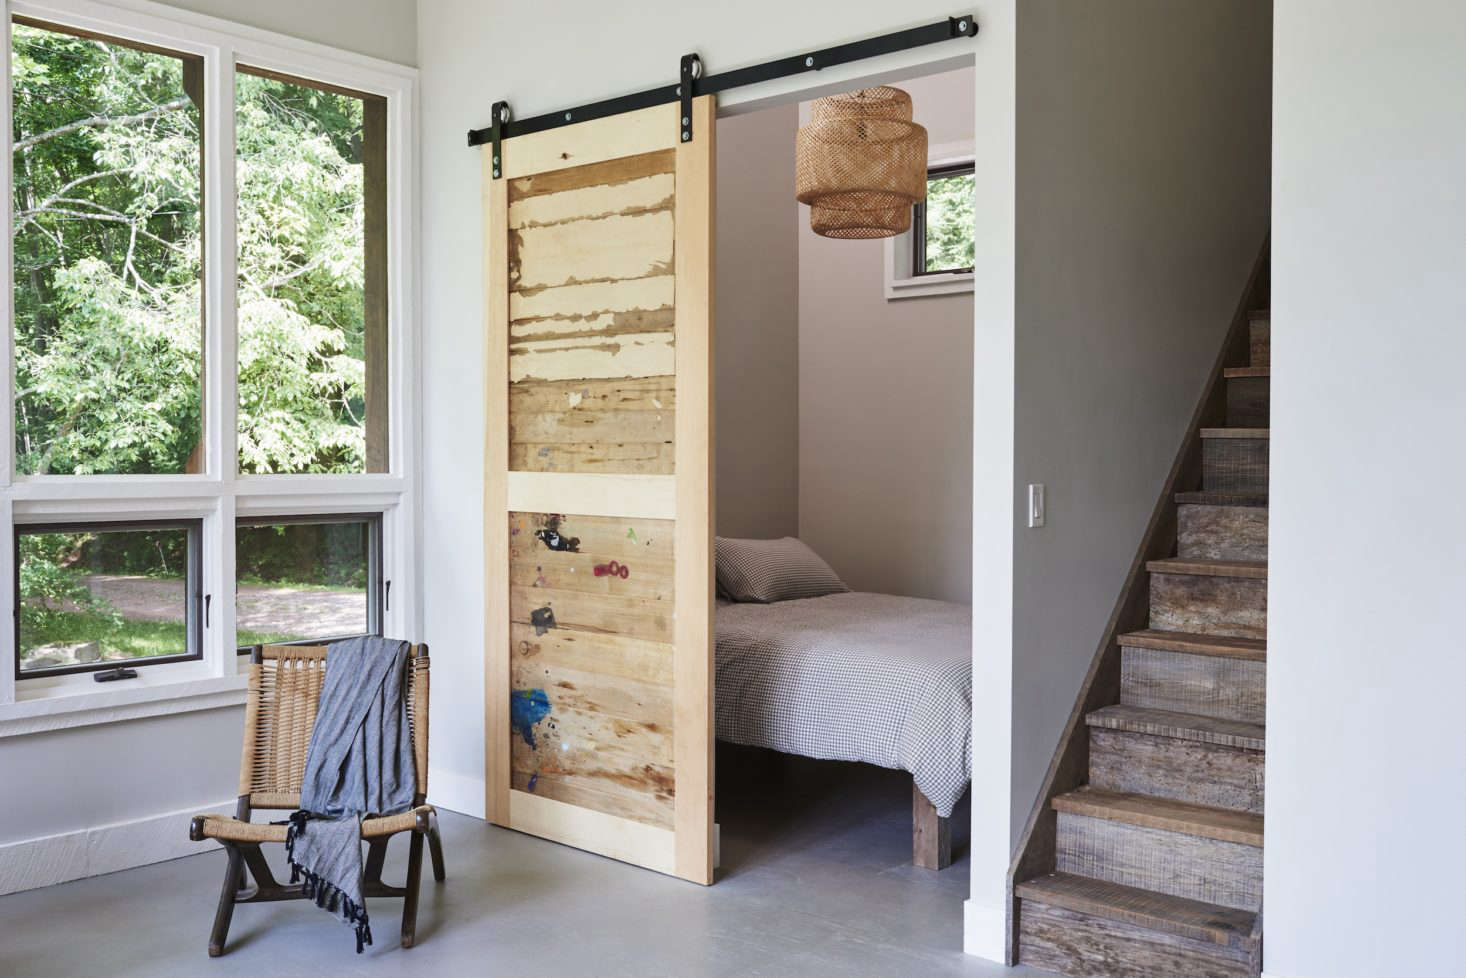 A sliding barn door is made of salvaged wood from the artist's cabinet drawers (paint splotches included).